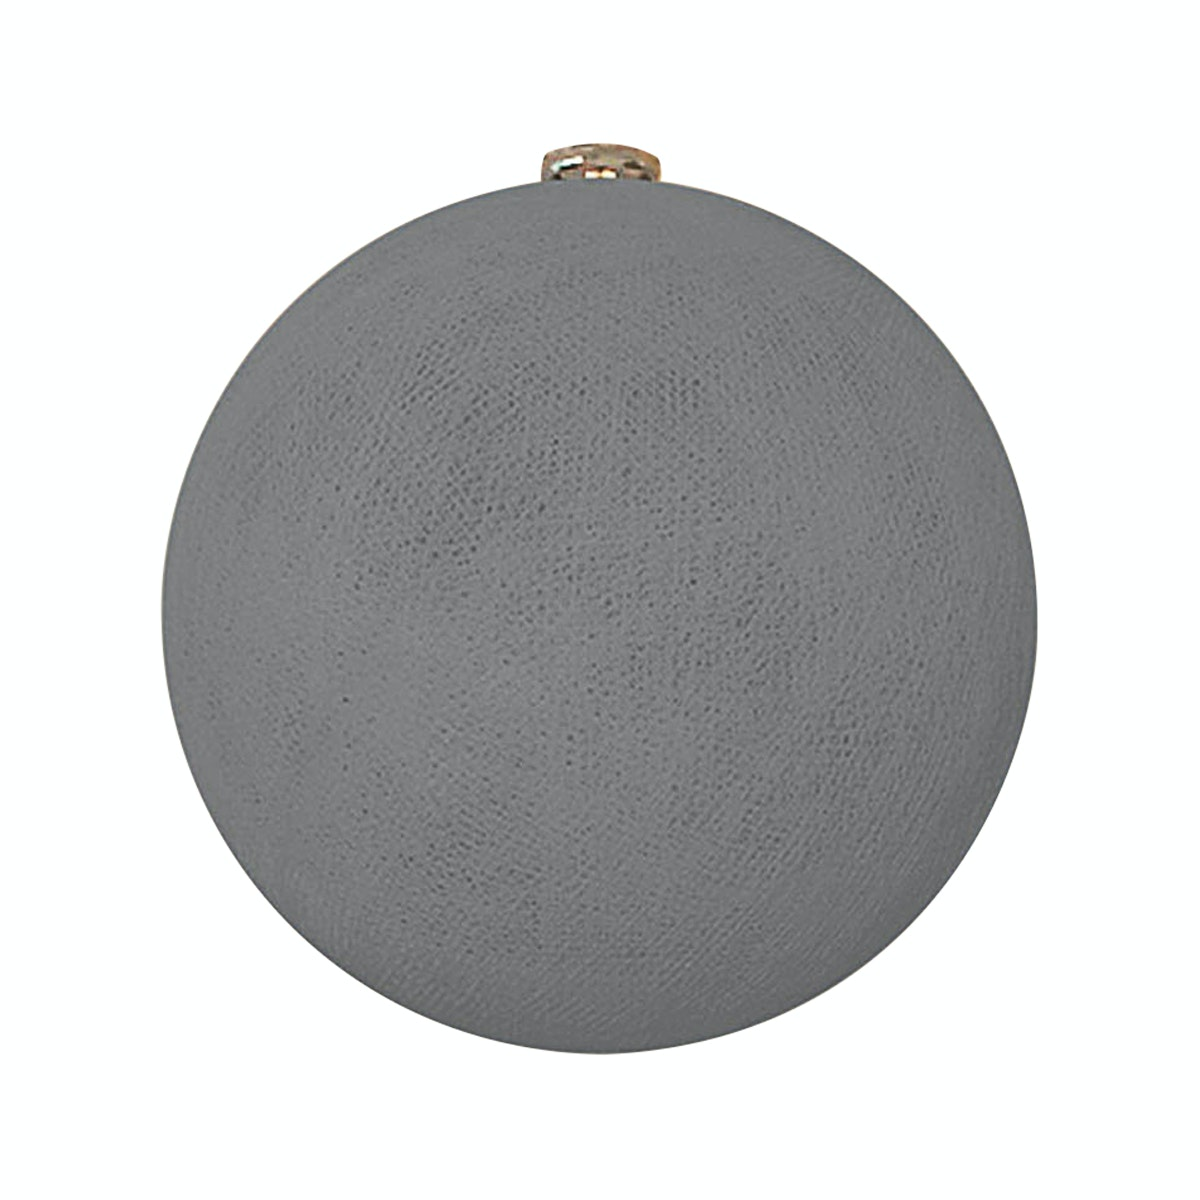 "Lightcraft Indonesia Big Cotton Ball 10"" Stone Grey"